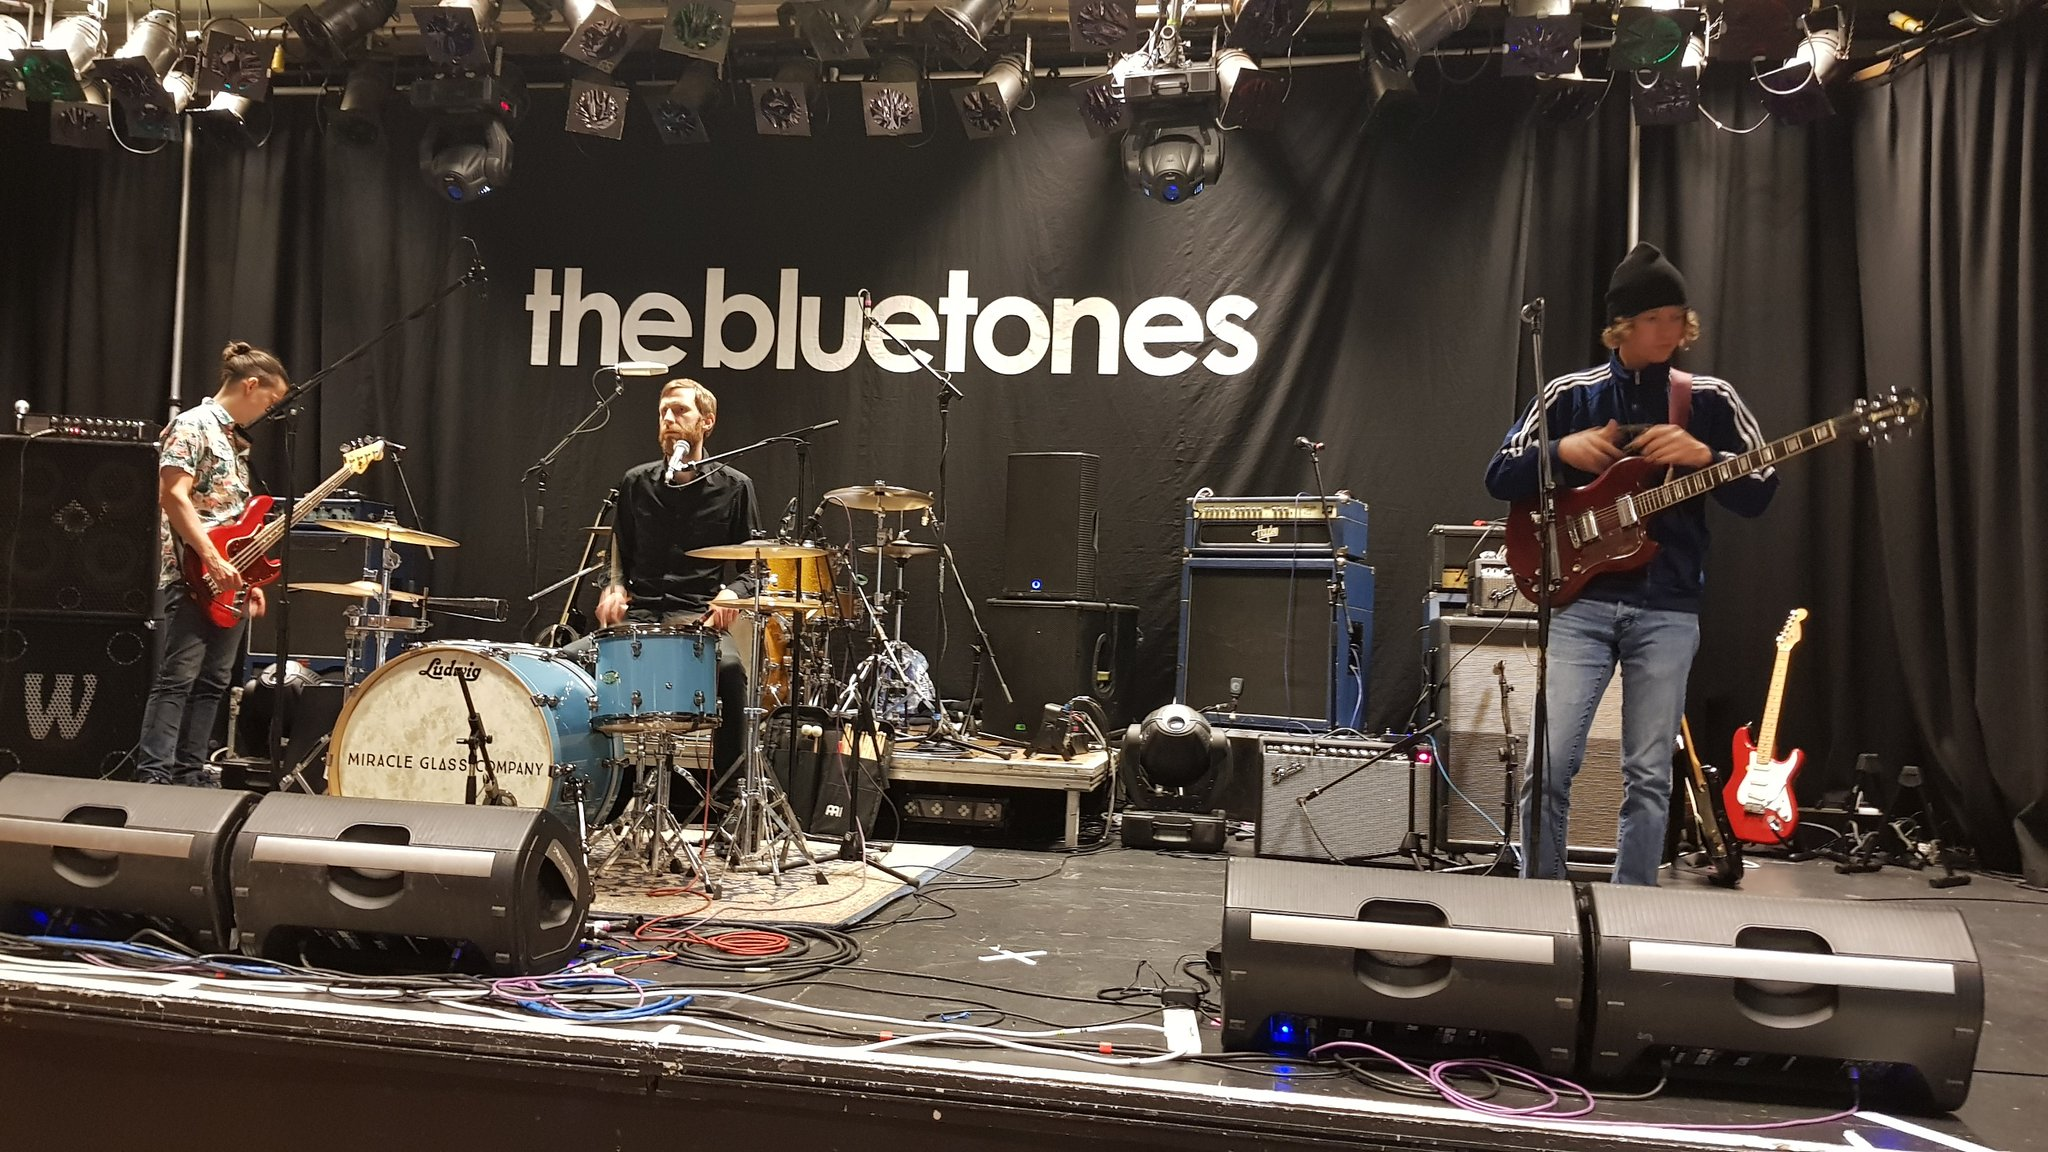 Soundchecking @MiracleGlassCo  Supporting @TheBluetones at @KingGeorgesHall Blackburn. See you there @BluetonesFanz https://t.co/KPtDjKt86F